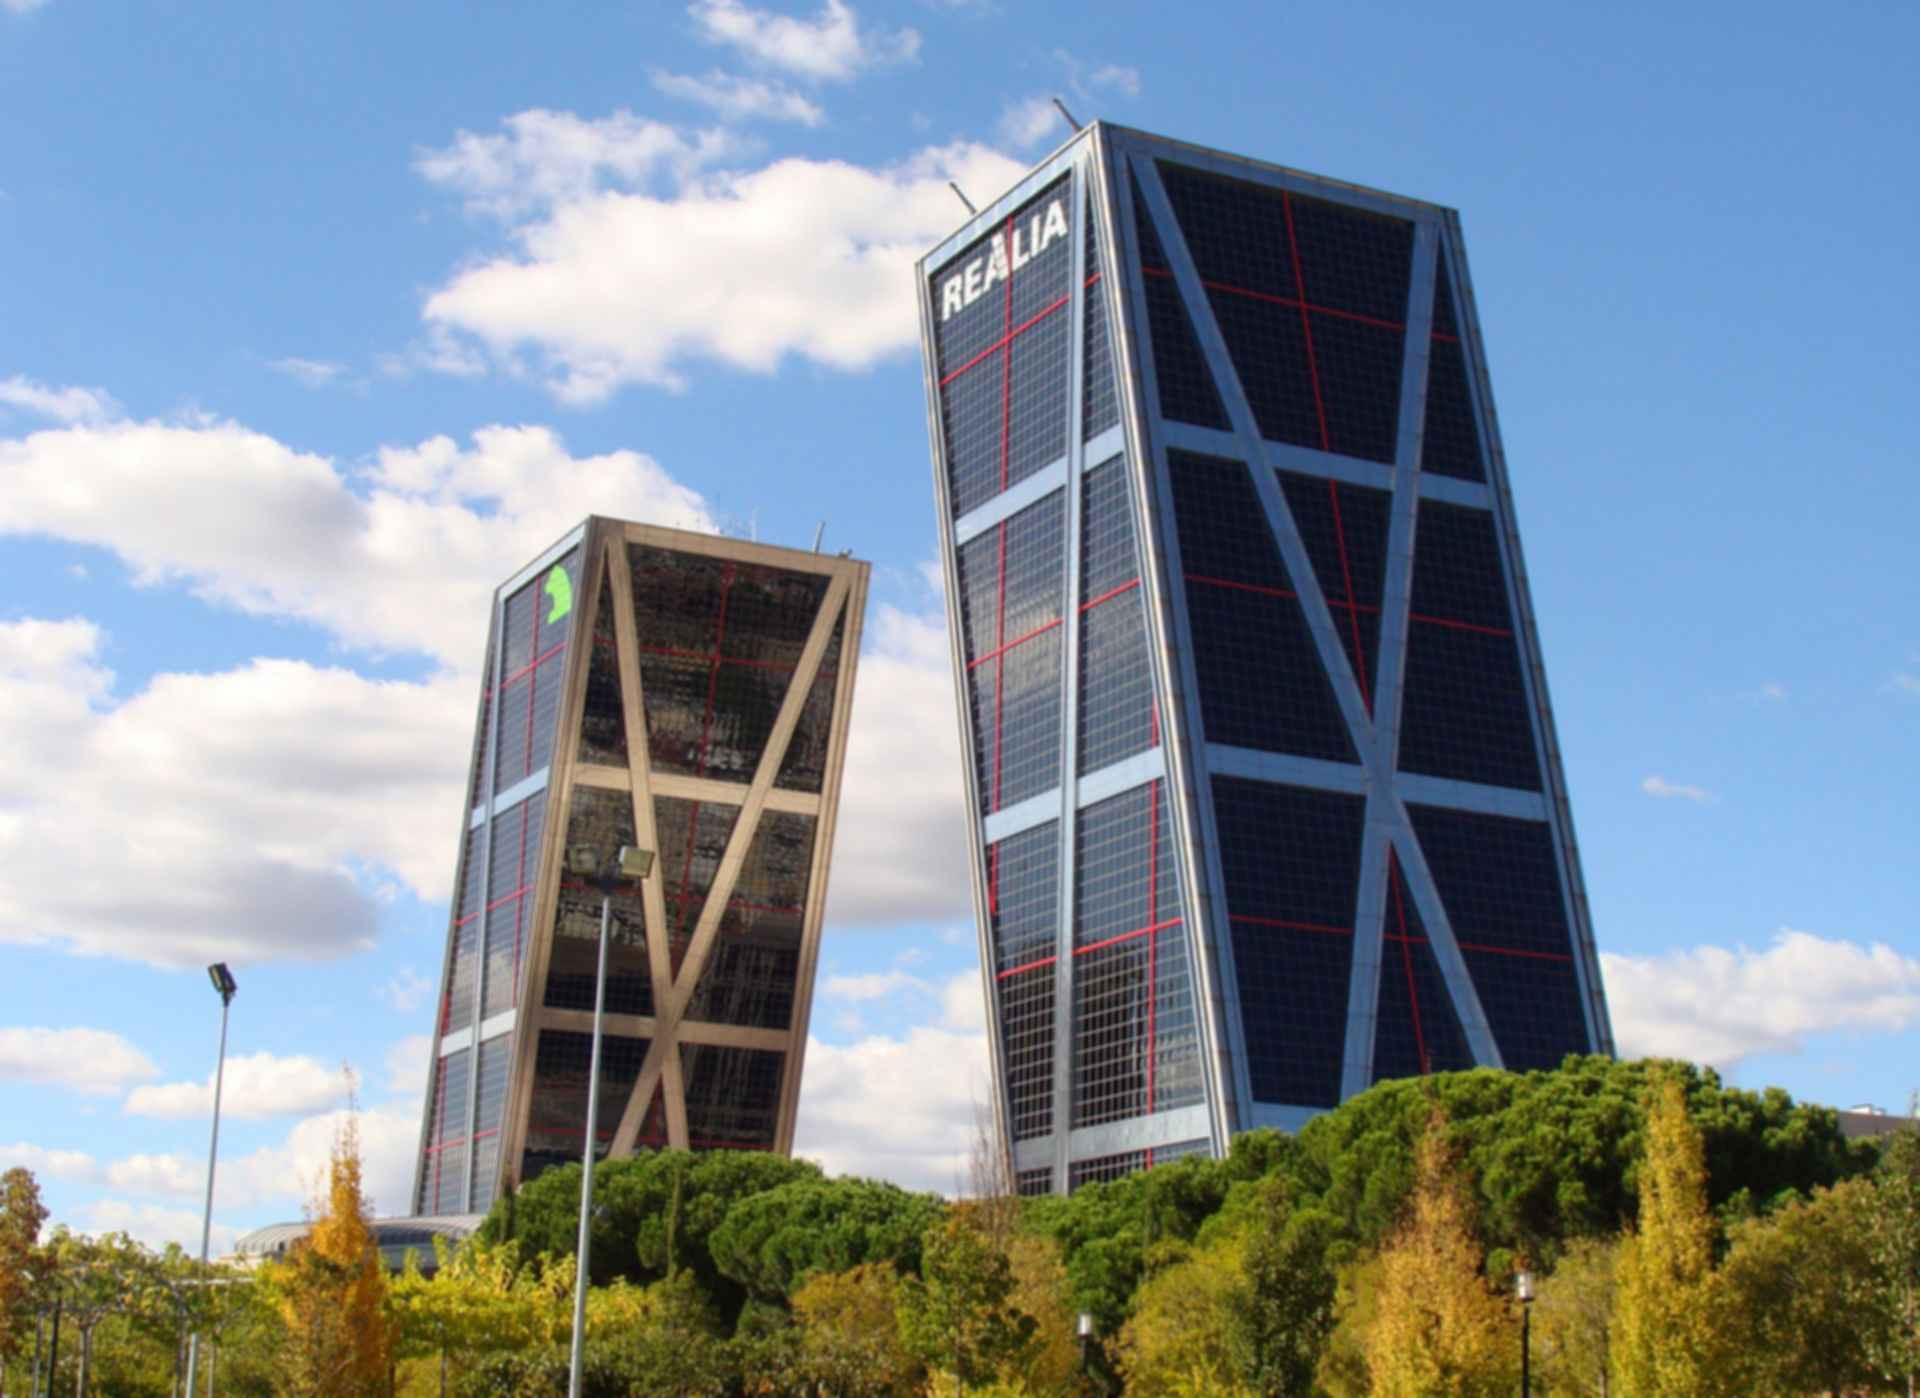 Gate of Europe Towers - Side View